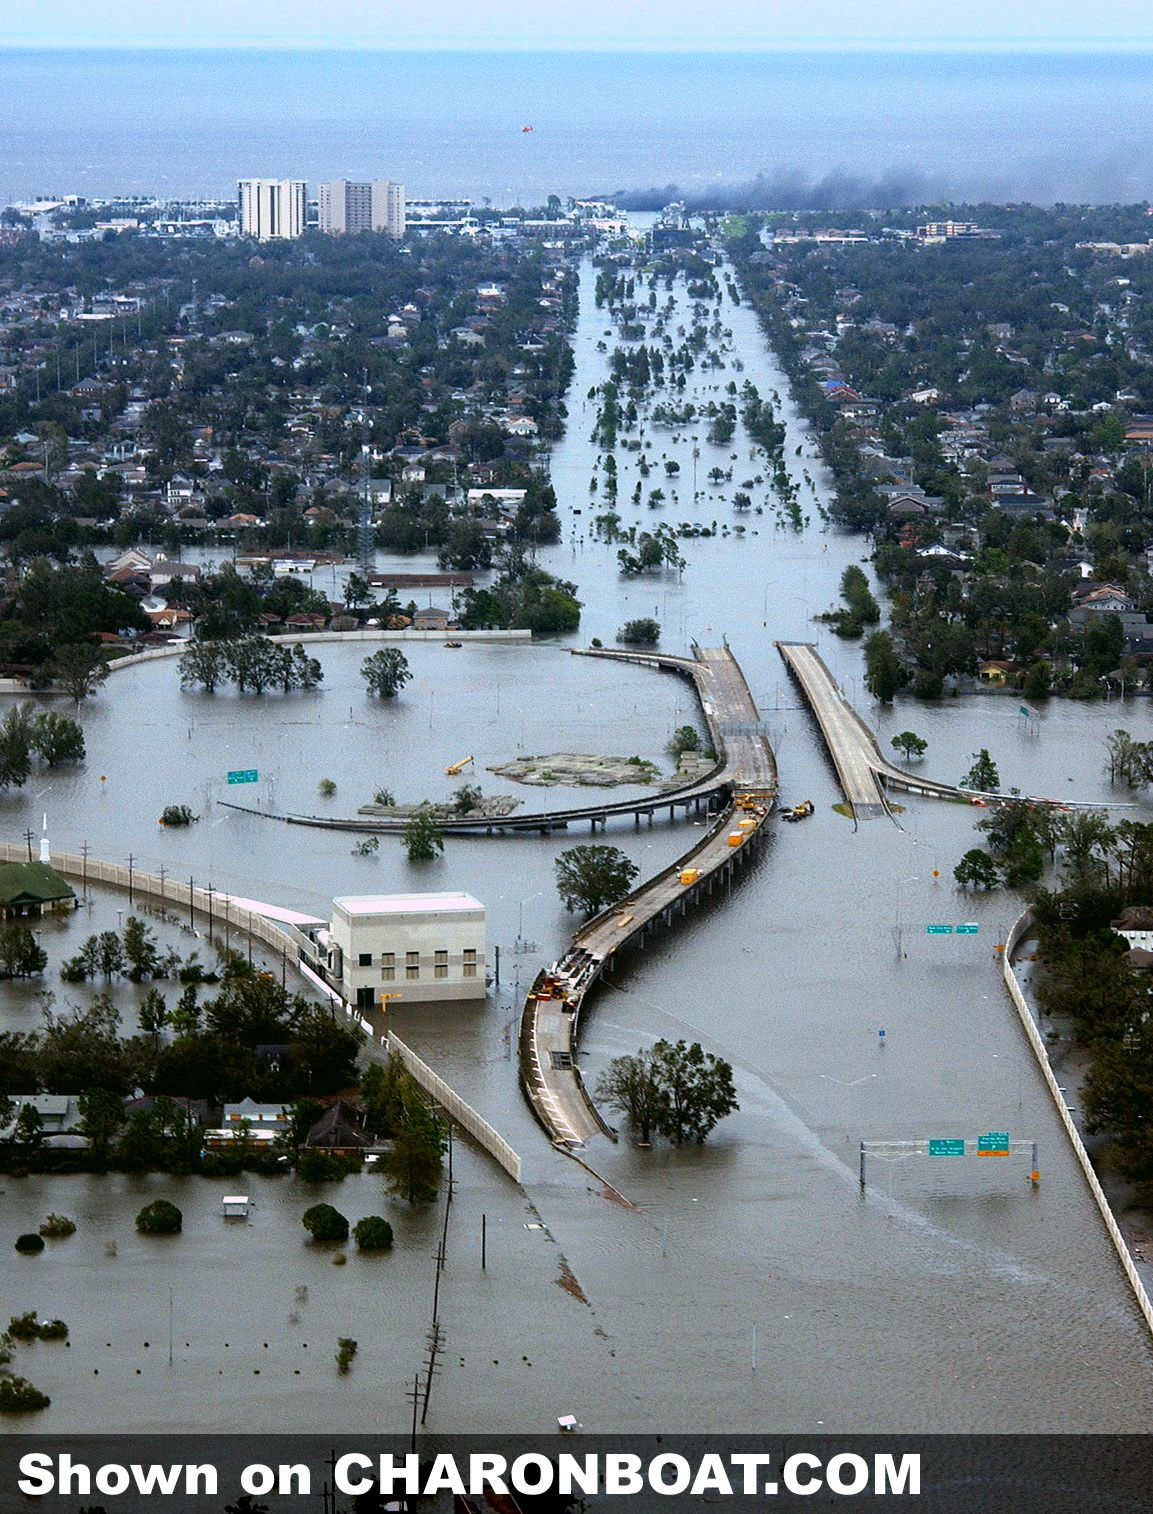 Archaeology From The Dark Side In 2020 Natural Disasters Hurricane Katrina Orleans